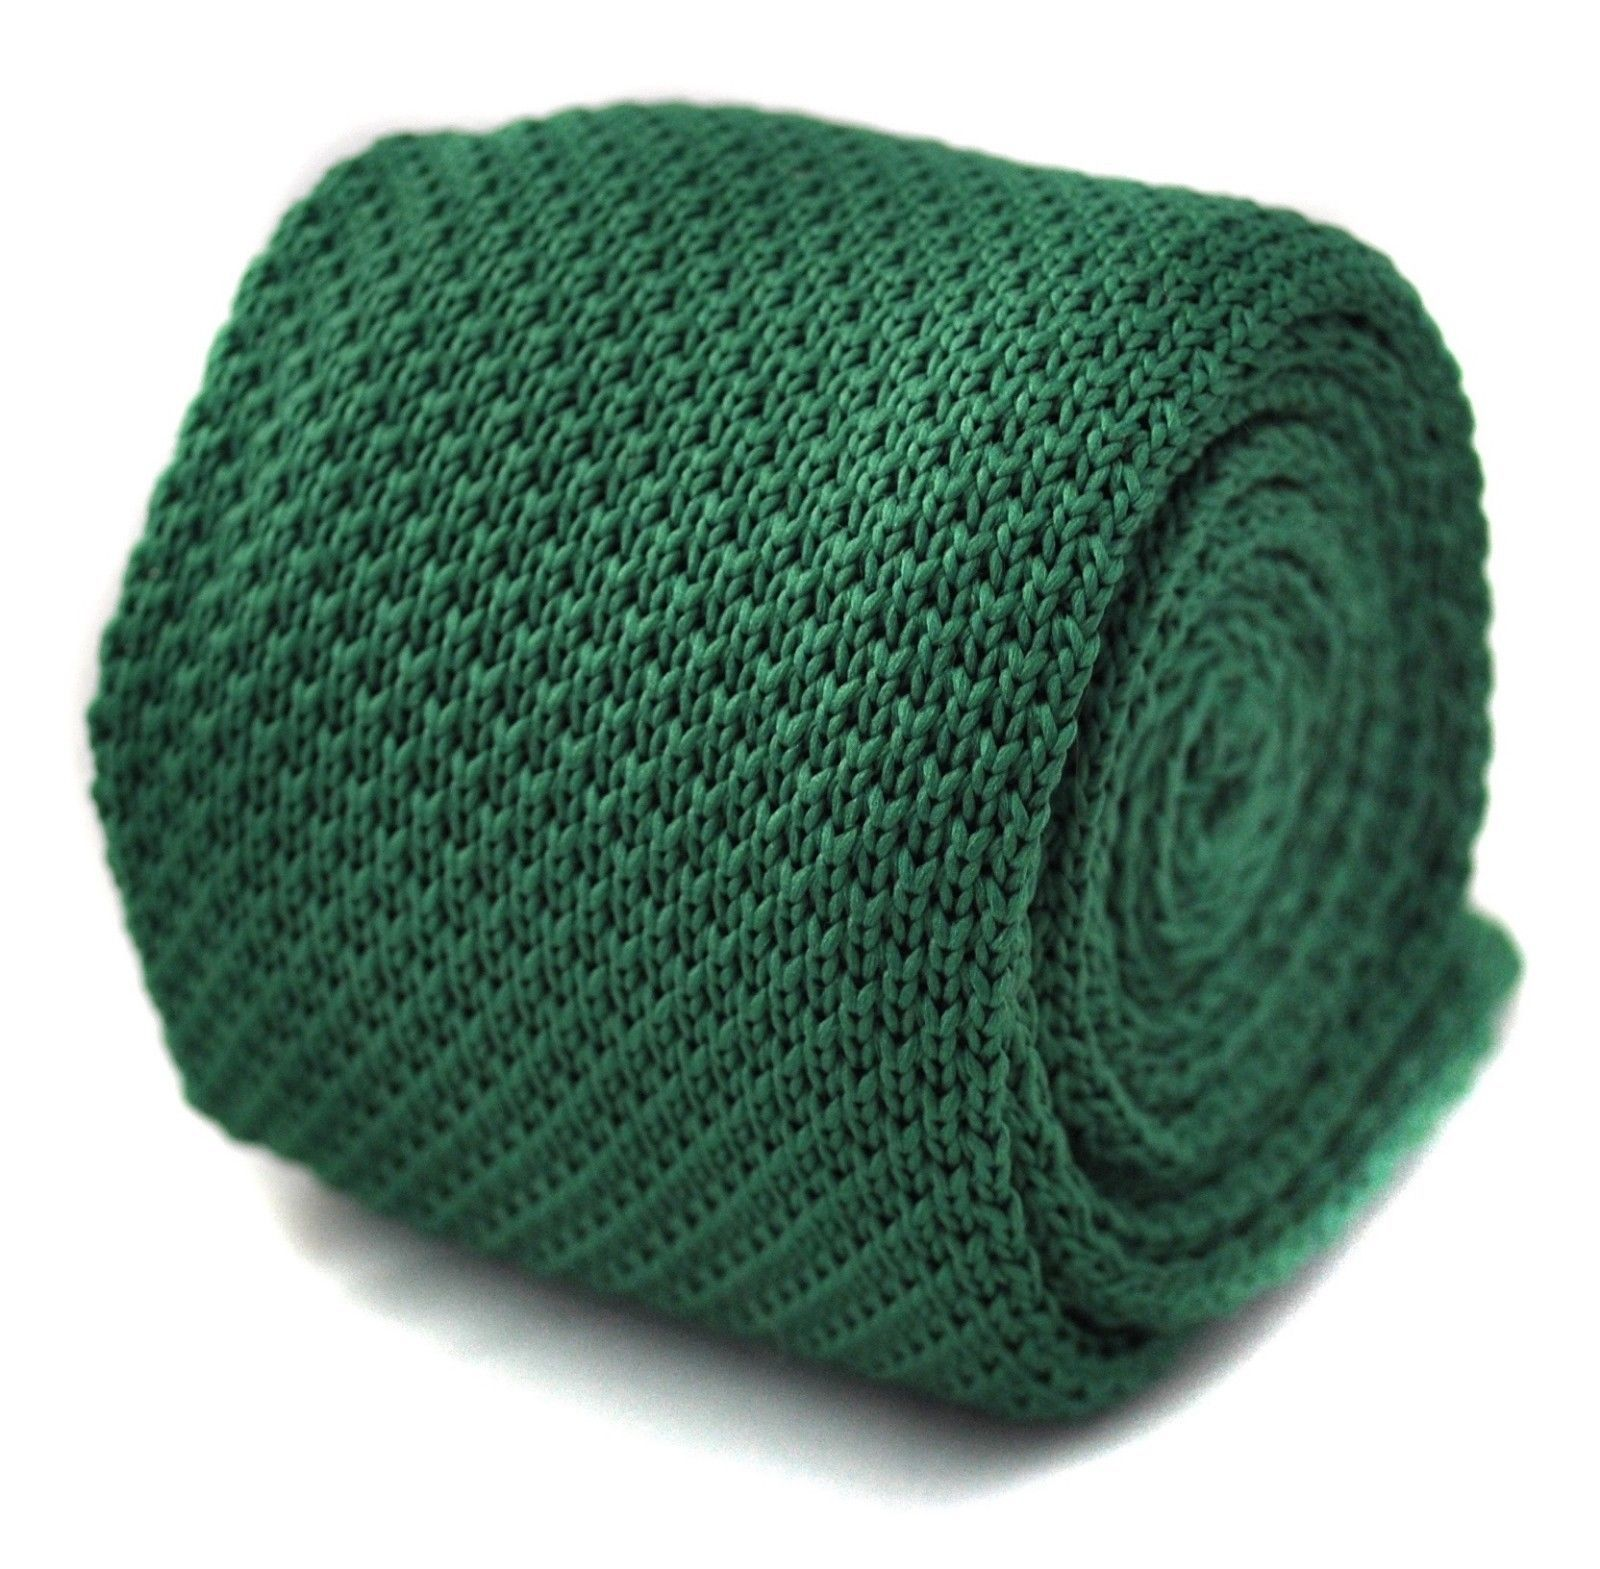 Knitted Plain Green Mens Tie by Frederick Thomas FT266